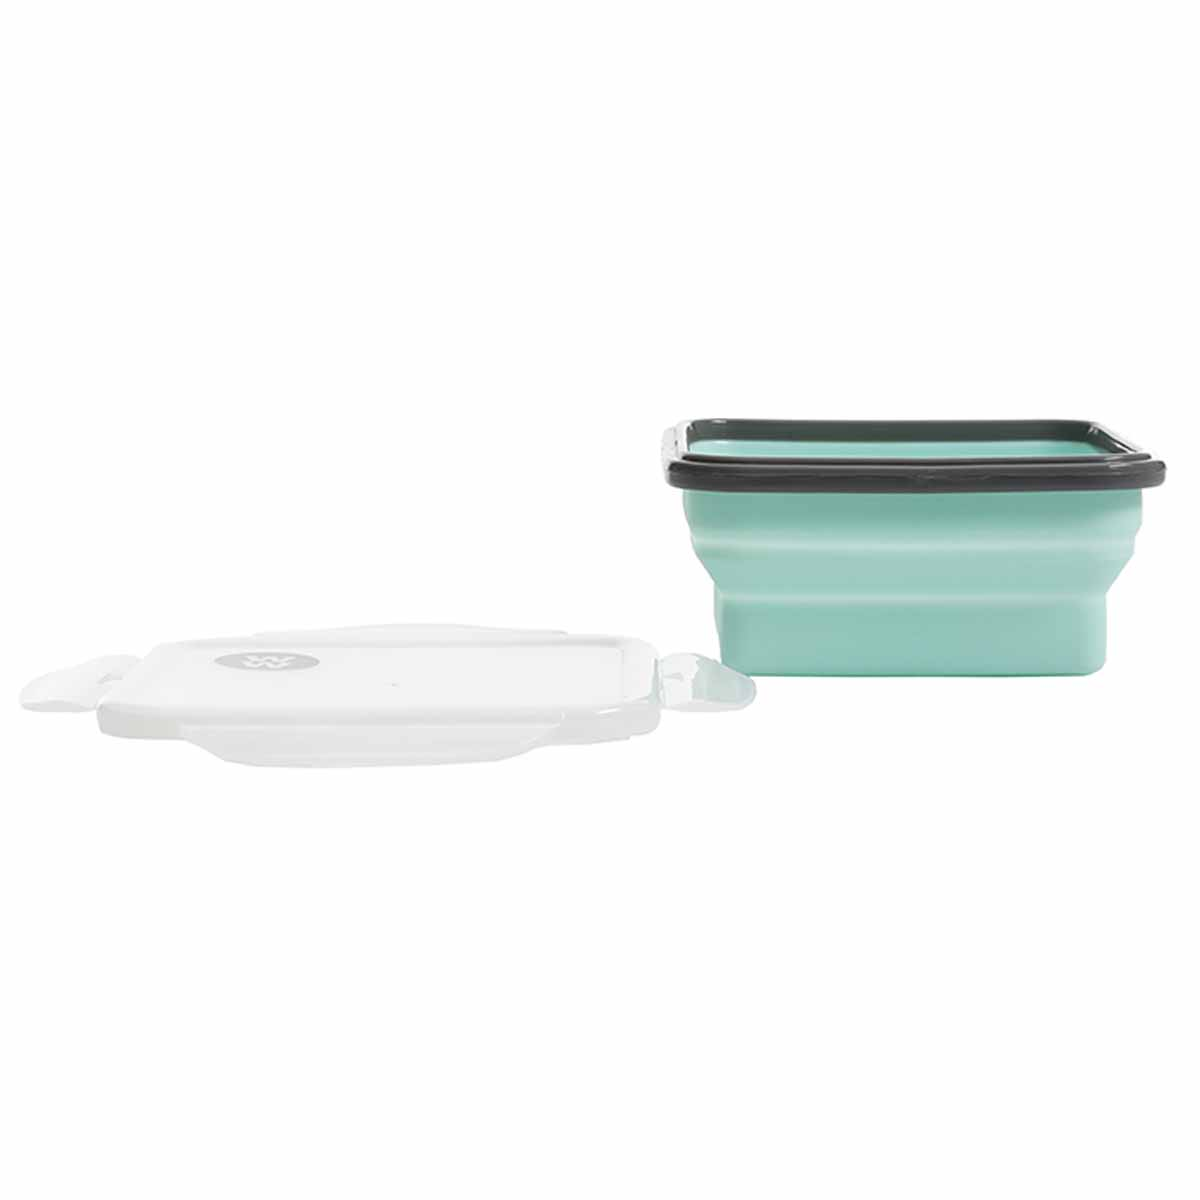 3-Piece Collapsible Silicone Lunch Containers - alternate view 2